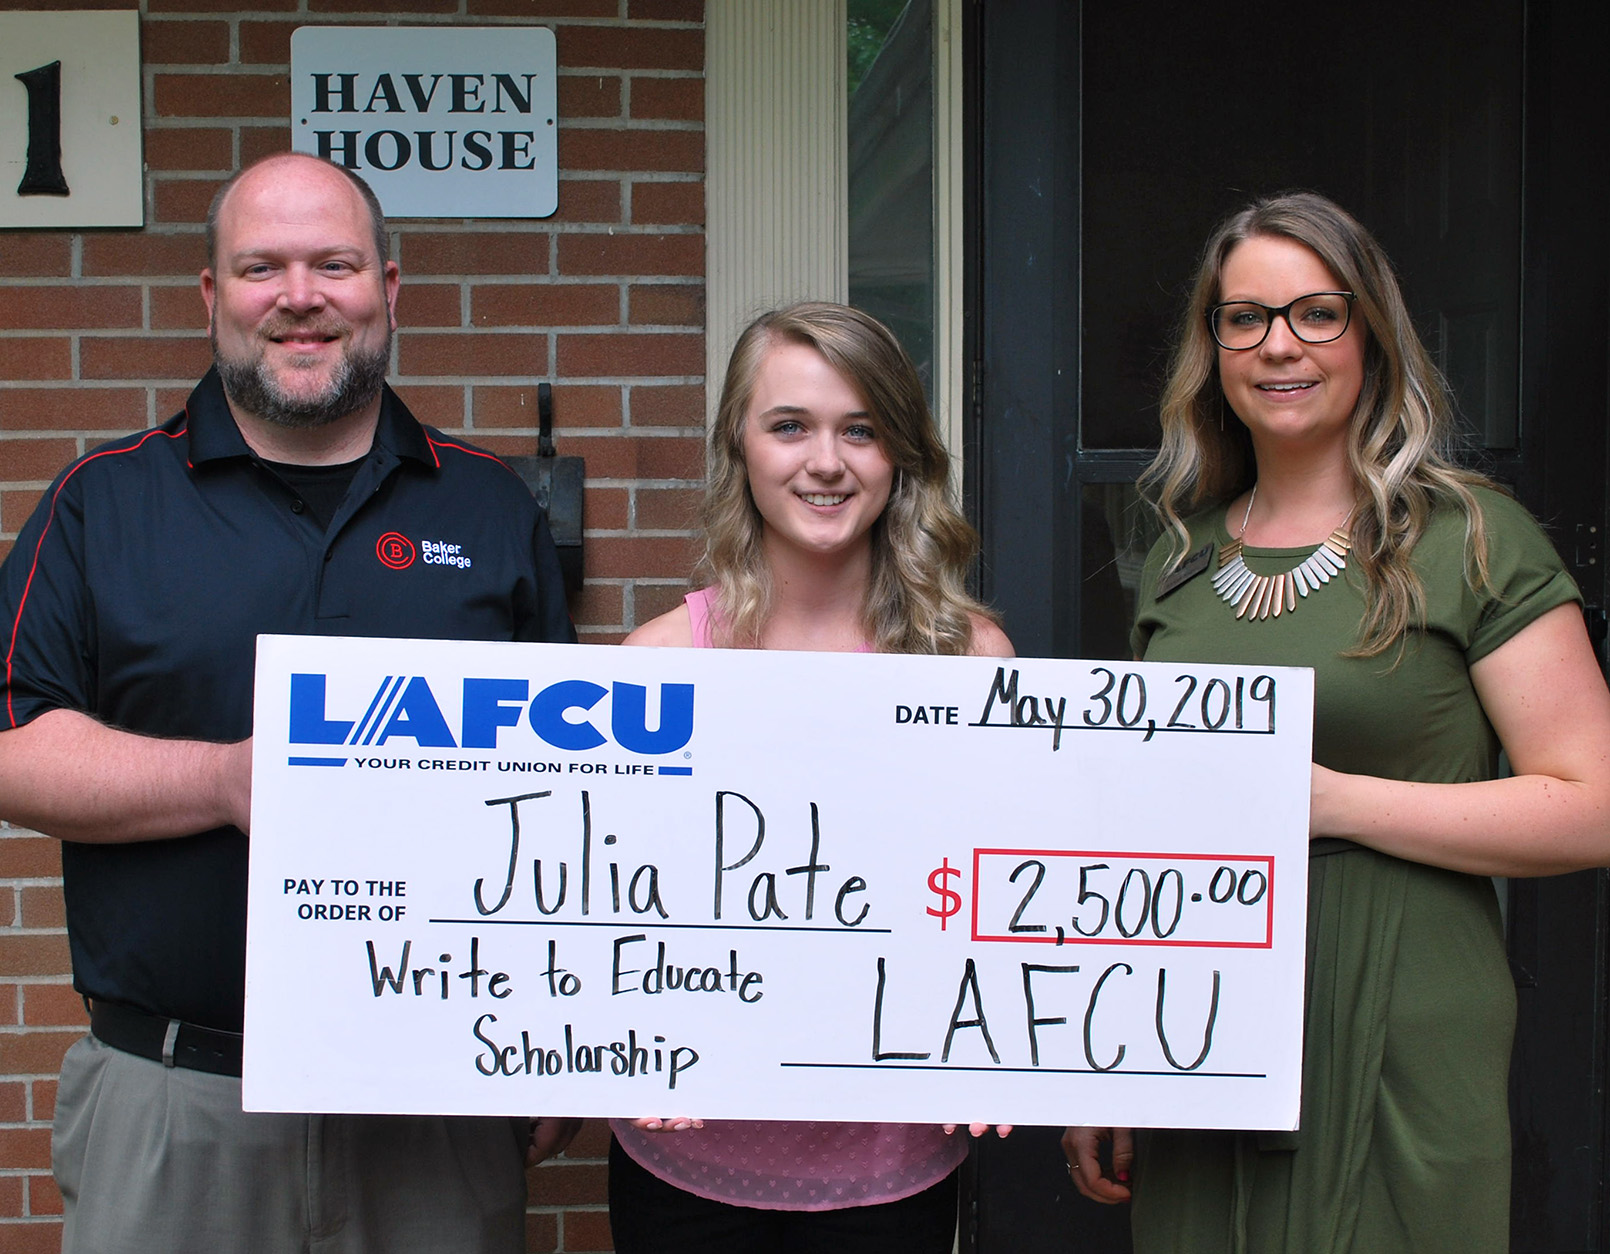 Baker College-bound Julia Pate, center, receives the LAFCU Write to Educate scholarship from LAFCU Marketing and Communications Specialist Alyssa Sliger, at right. Also pictured is Dave Knox, Baker College enrollment specialist.